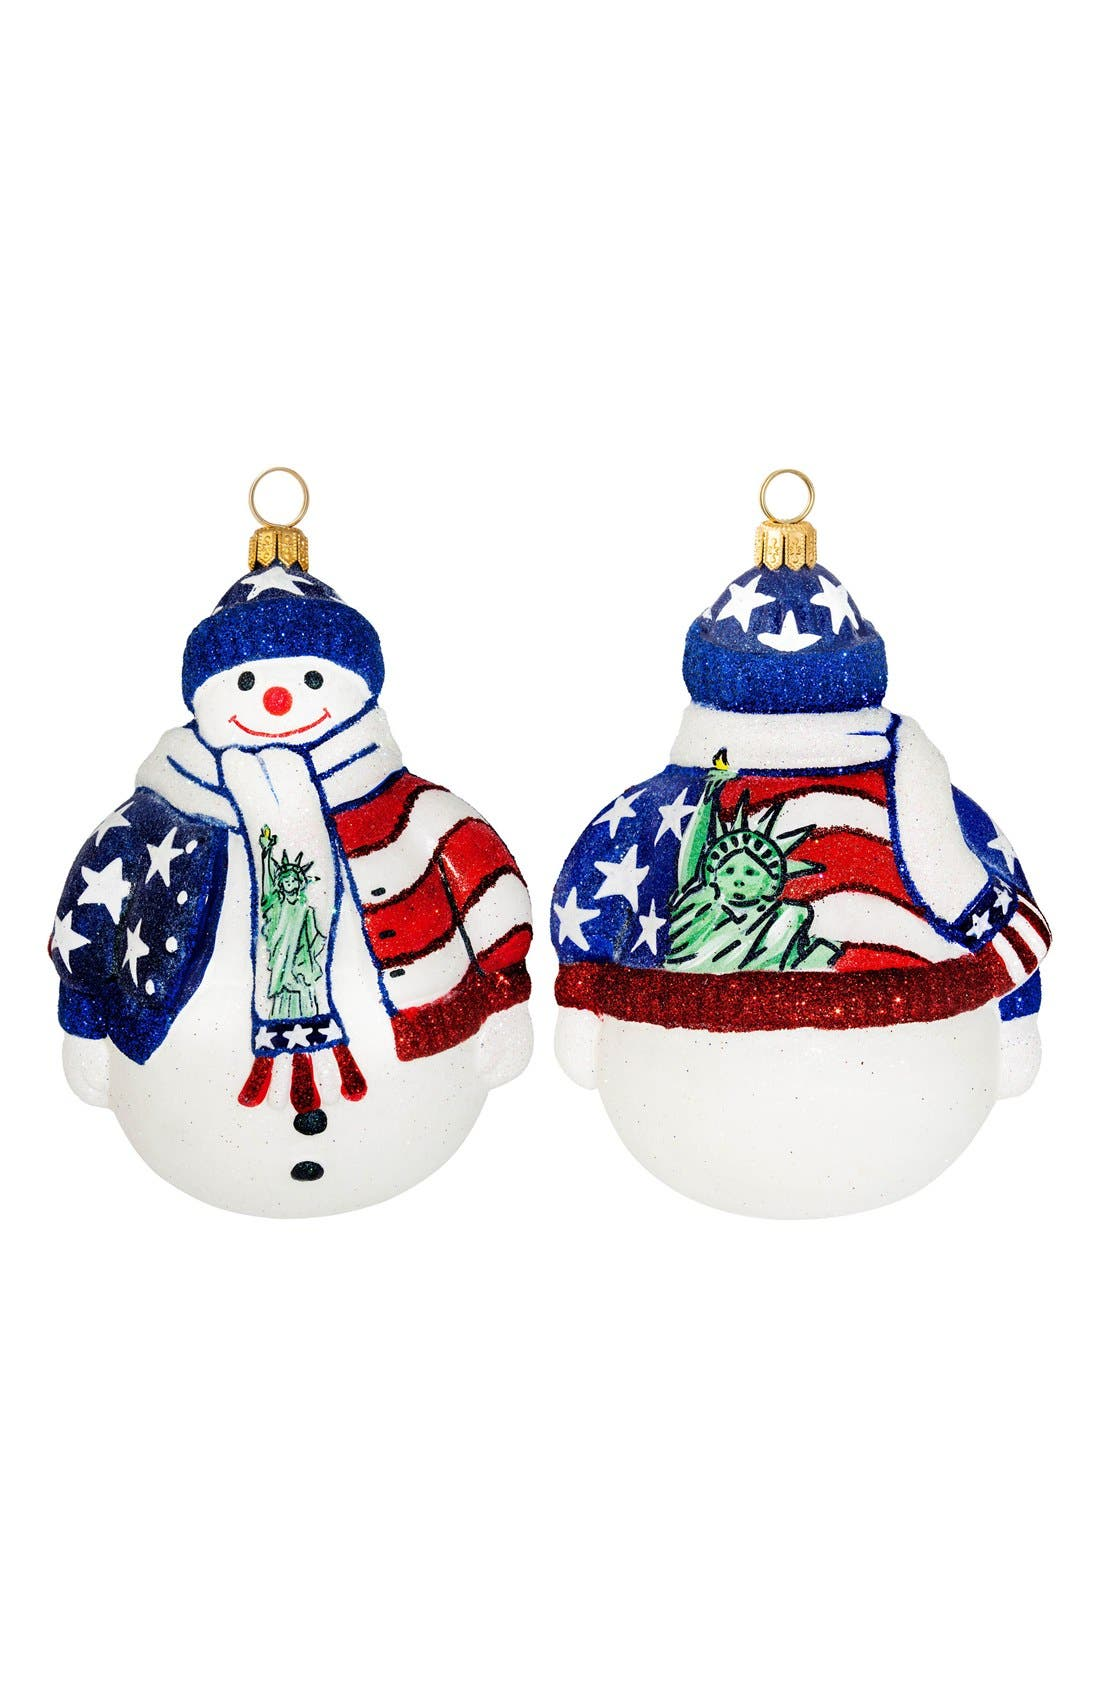 'Land of the Free' Snowman Ornament,                         Main,                         color,